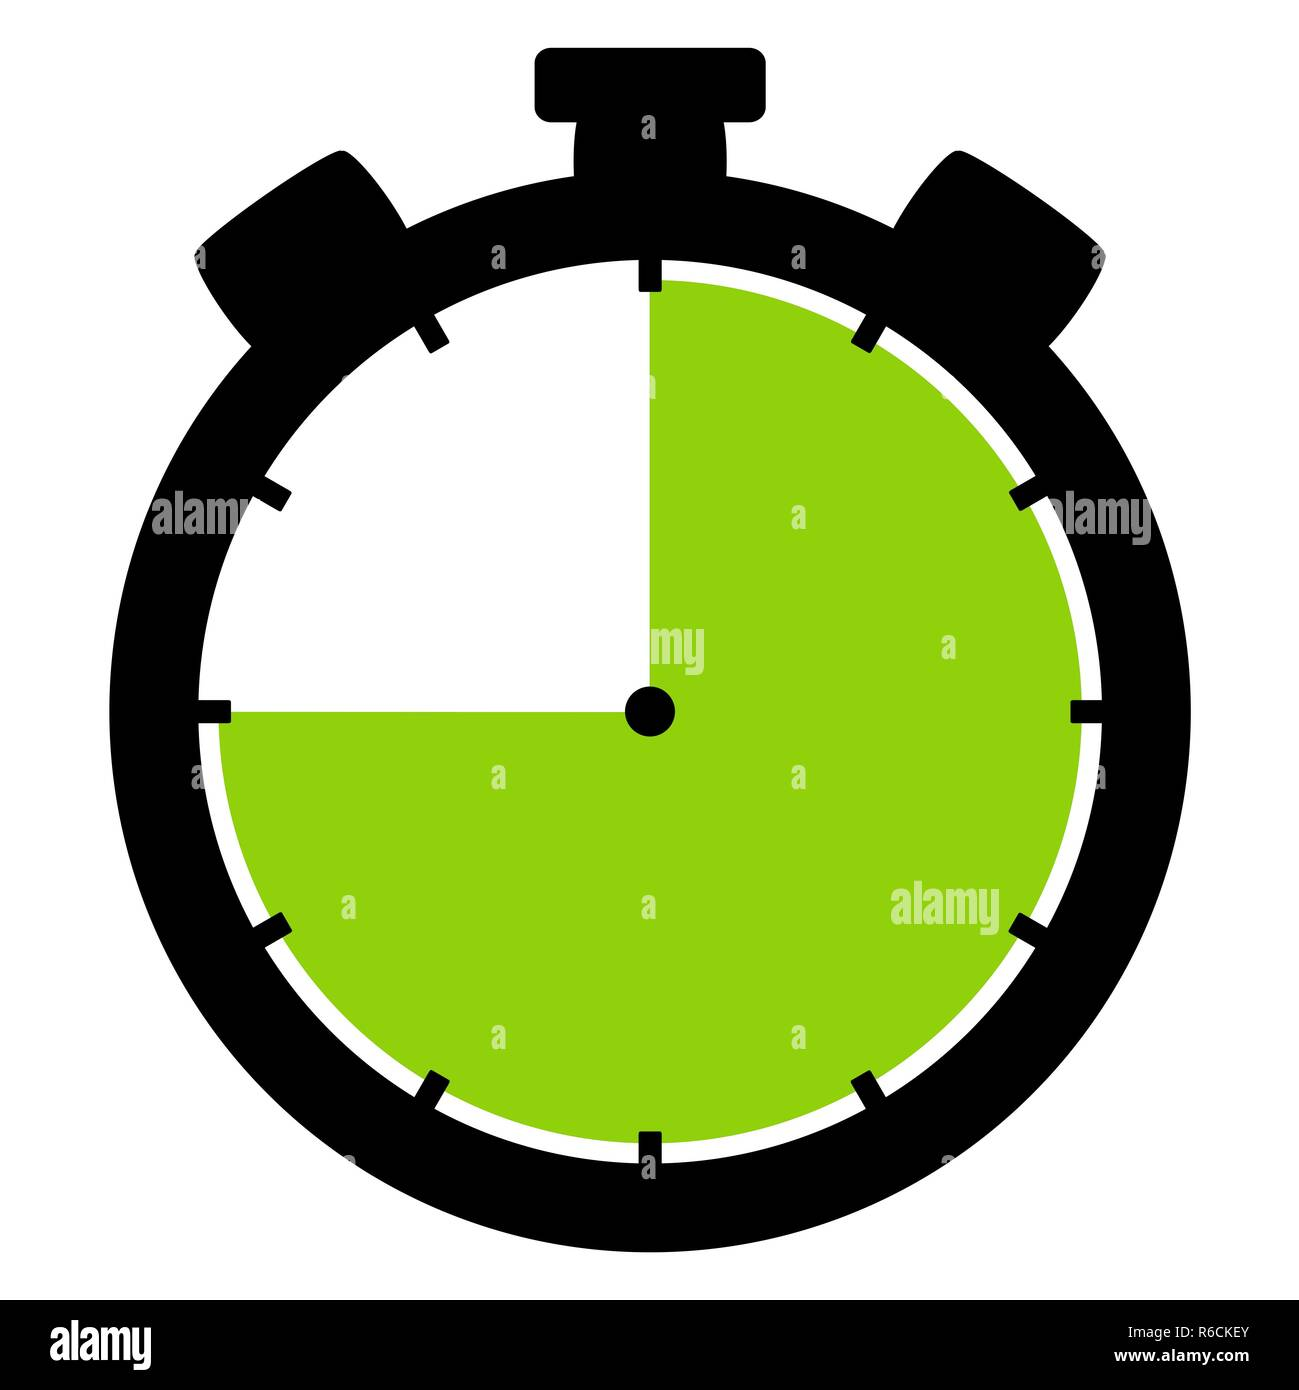 stopwatch icon: 45 minutes 45 seconds or 9 hours - Stock Image